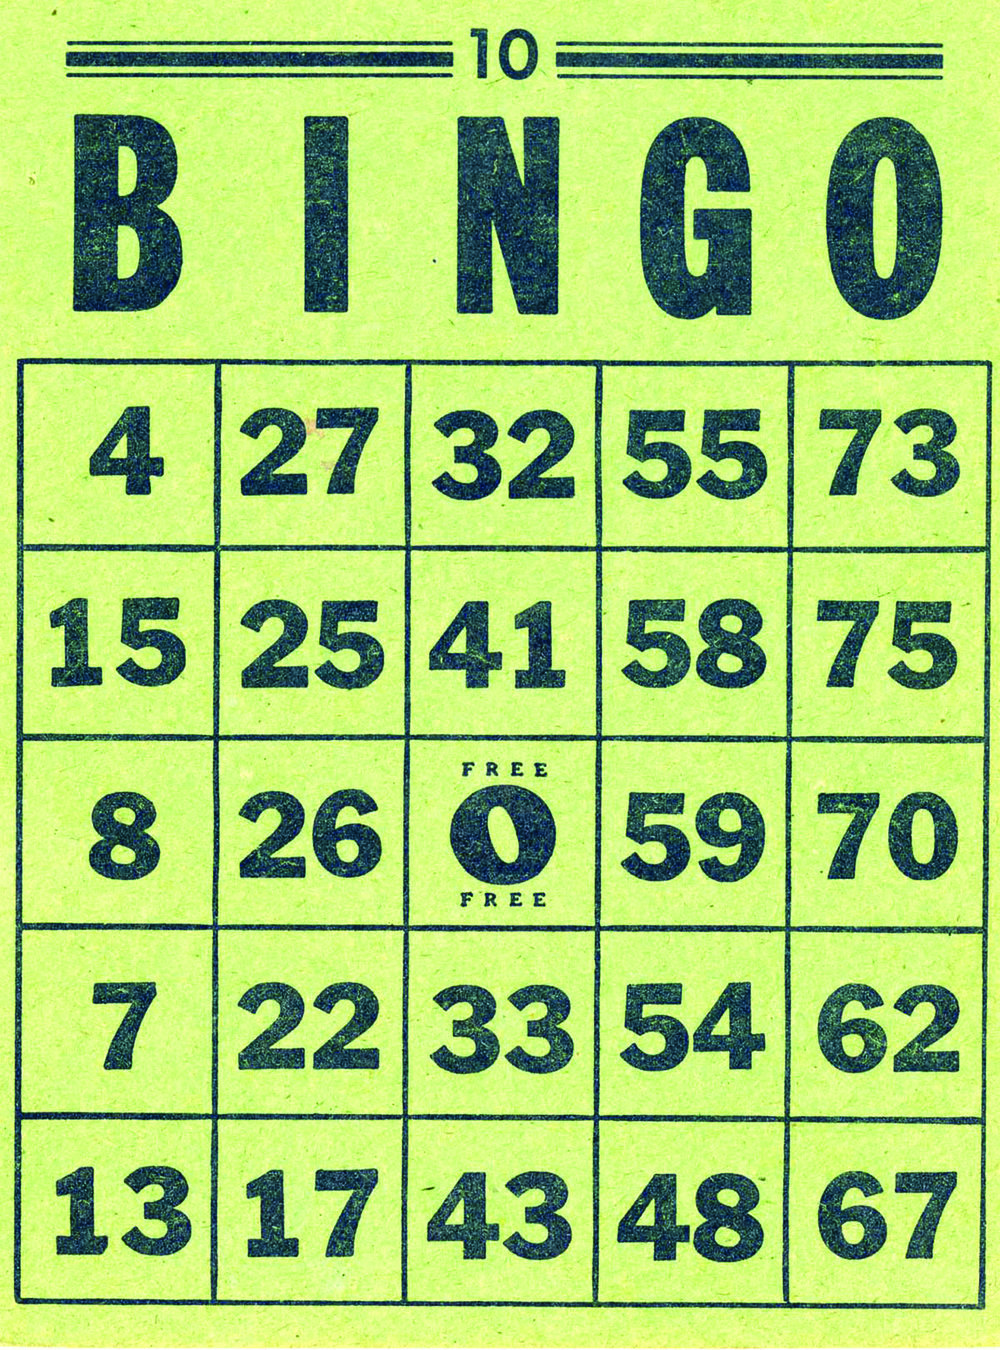 Seniors Bingo - Mon & Thur in OctoberMonday: members $3 Thursday: all welcome $2 per book+ $1 jackpot